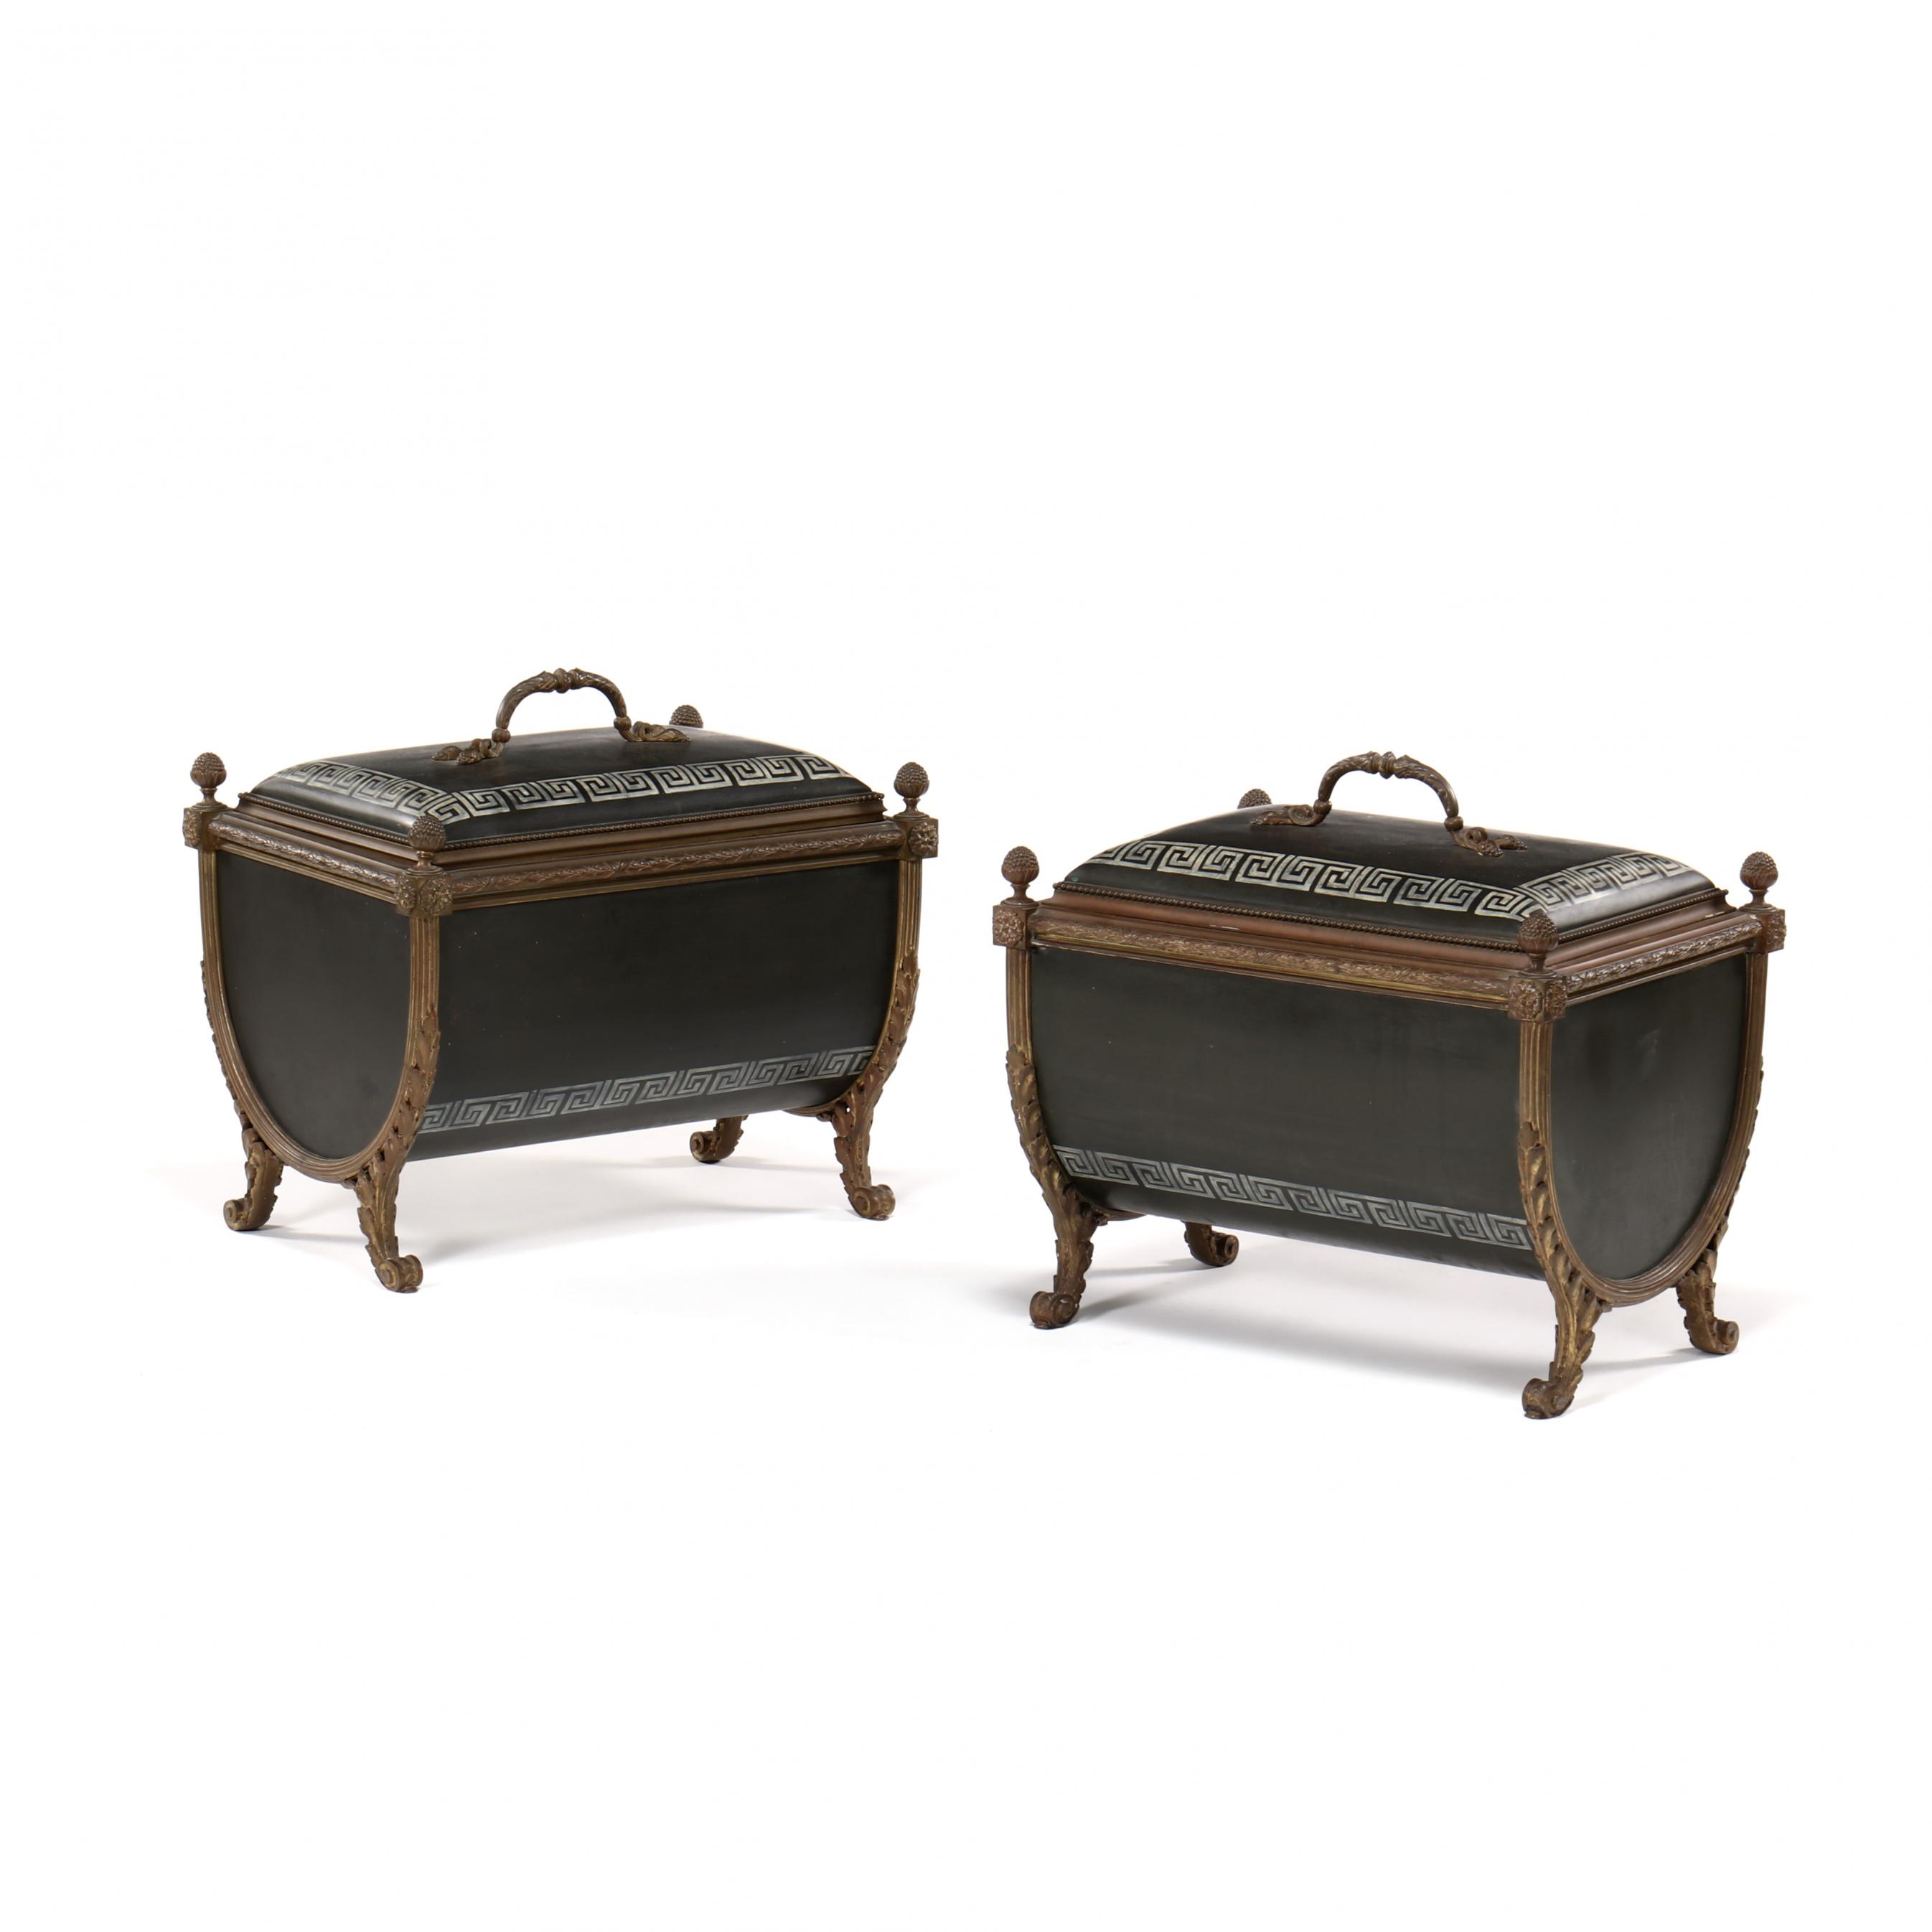 pair-of-neoclassical-style-painted-bronze-coal-scuttles